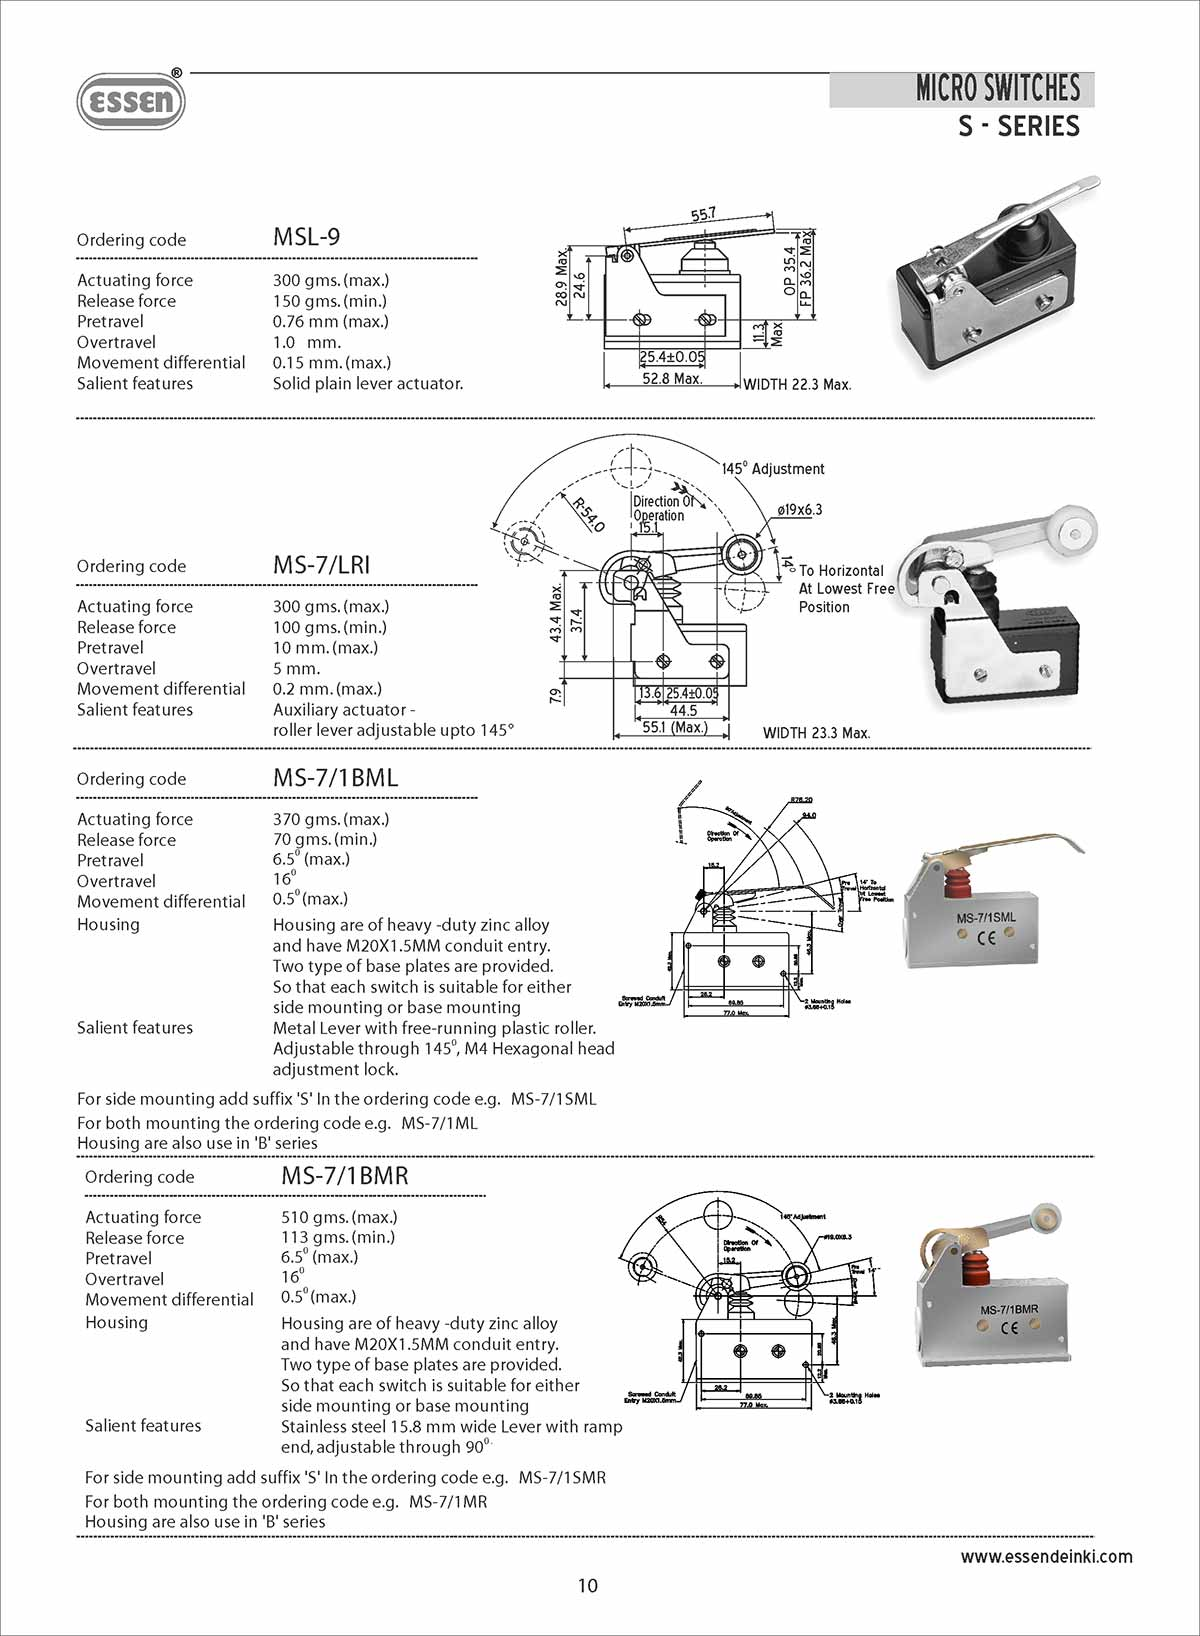 Connectors, Microswitches, Electronic Connectors, PCB